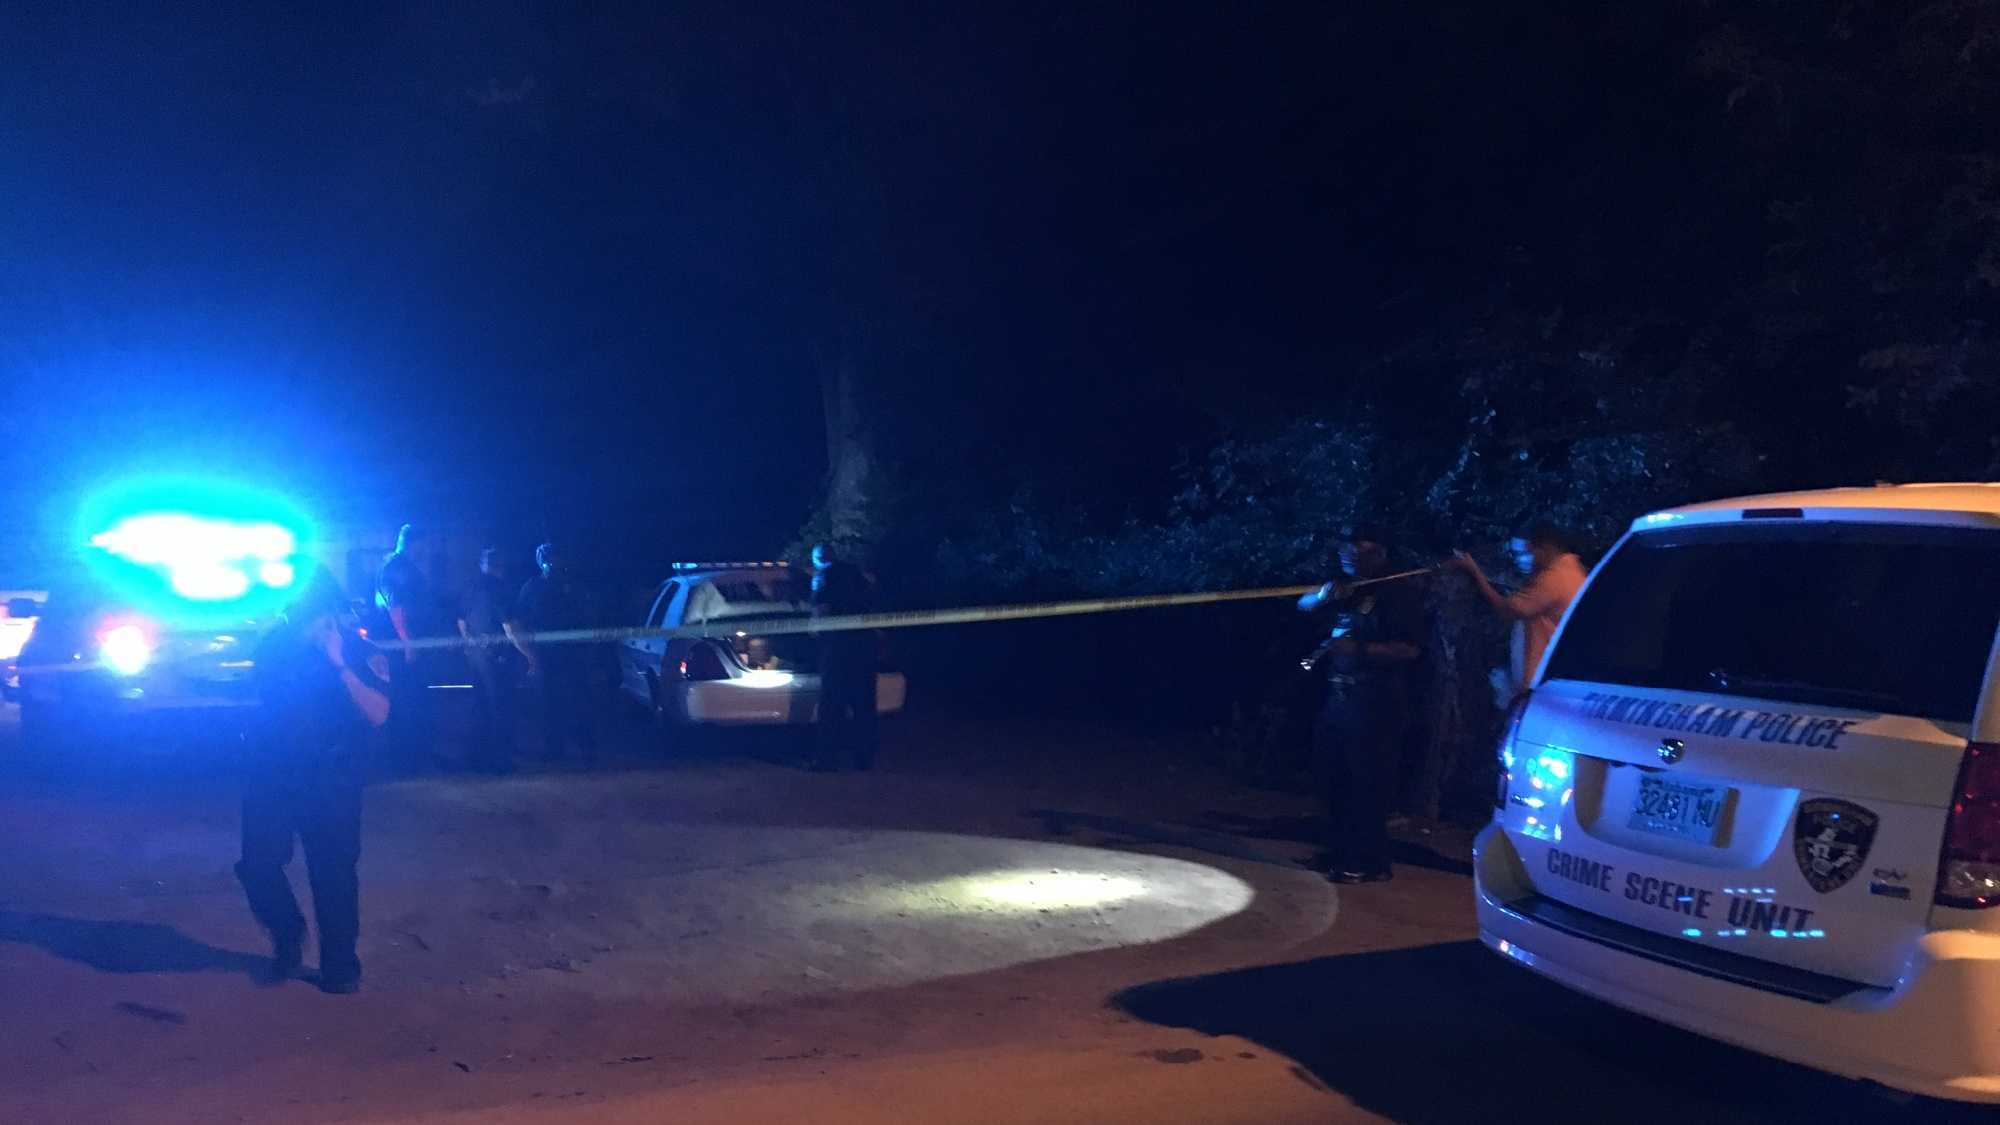 Birmingham police are investigating a shooting that happened in an alleyway in the 7700 block of Fifth Avenue North on Wednesday.